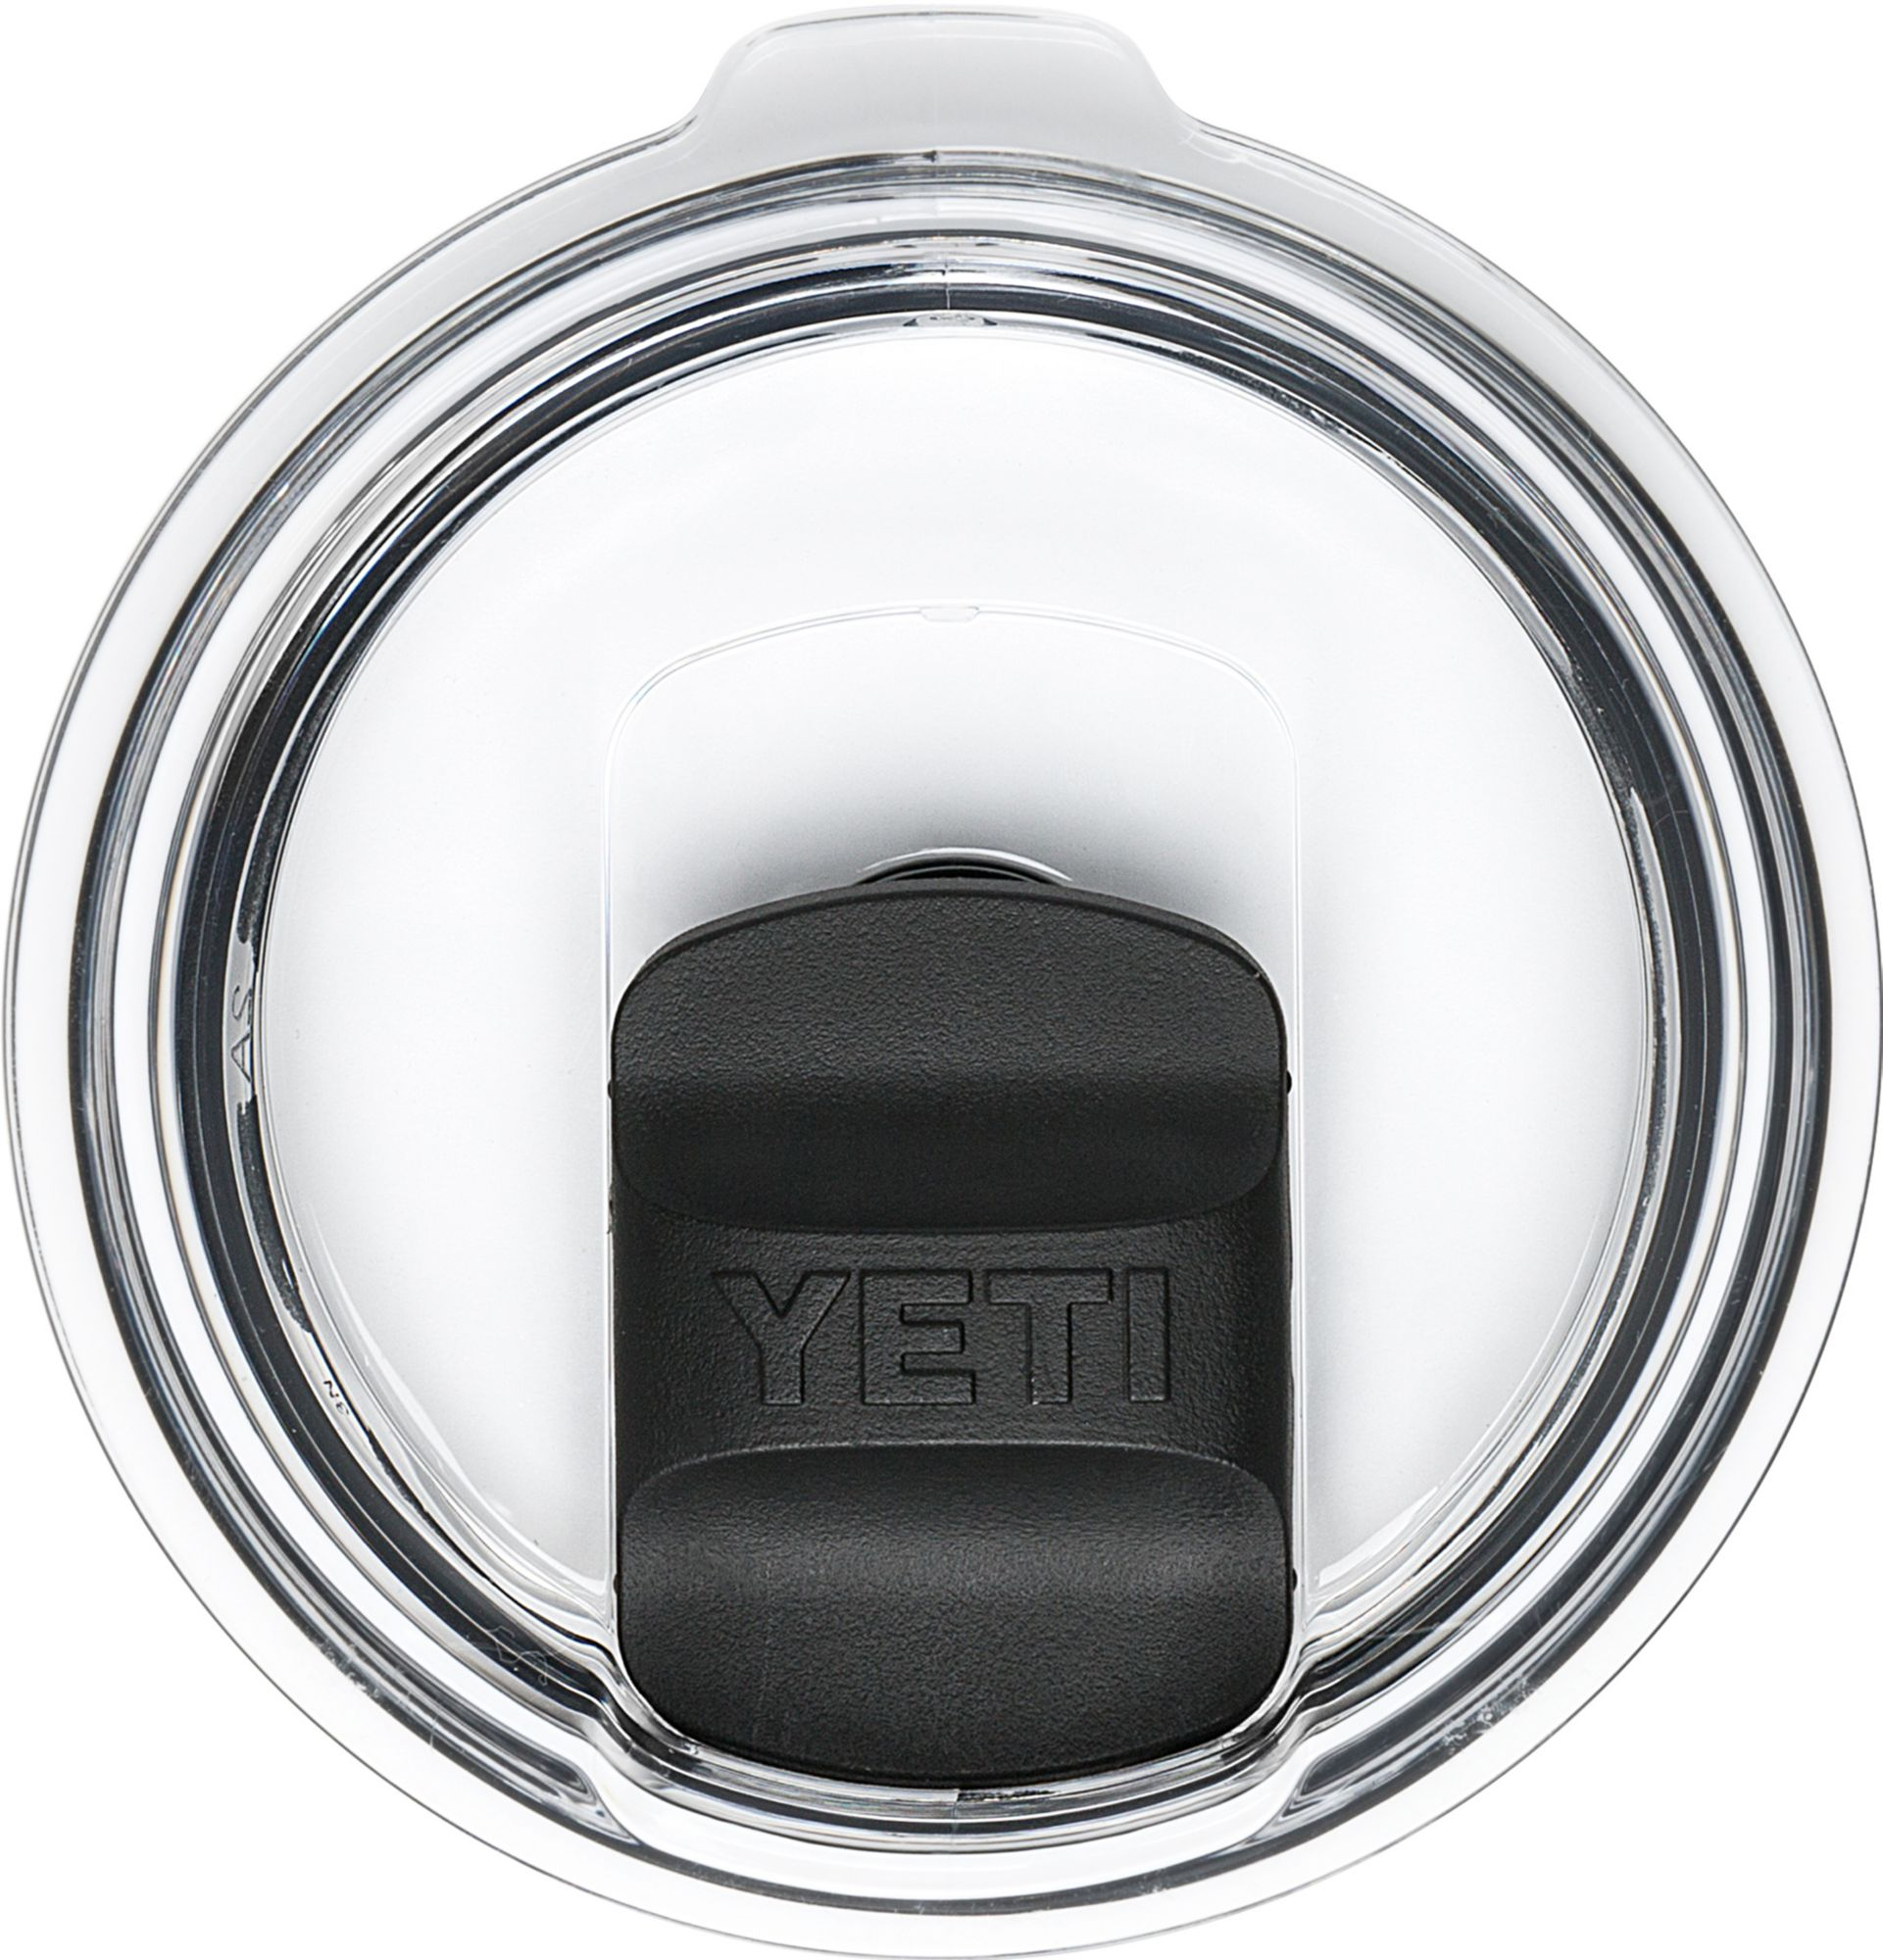 Game coolers for sale - Product Image Yeti 10 20 Oz Rambler Magslider Lid